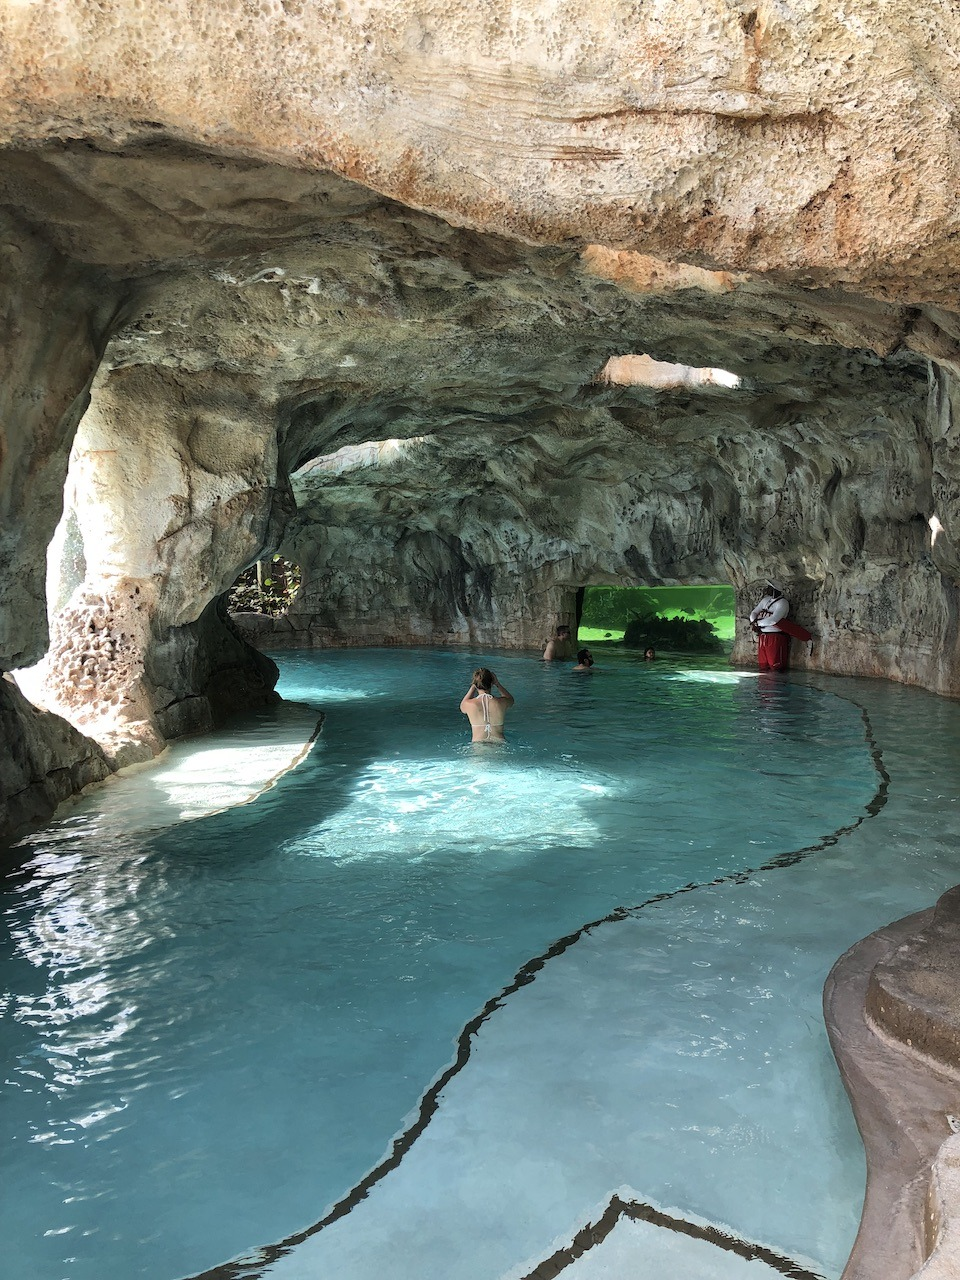 Grotto with aquarium view of nurse sharks and rays